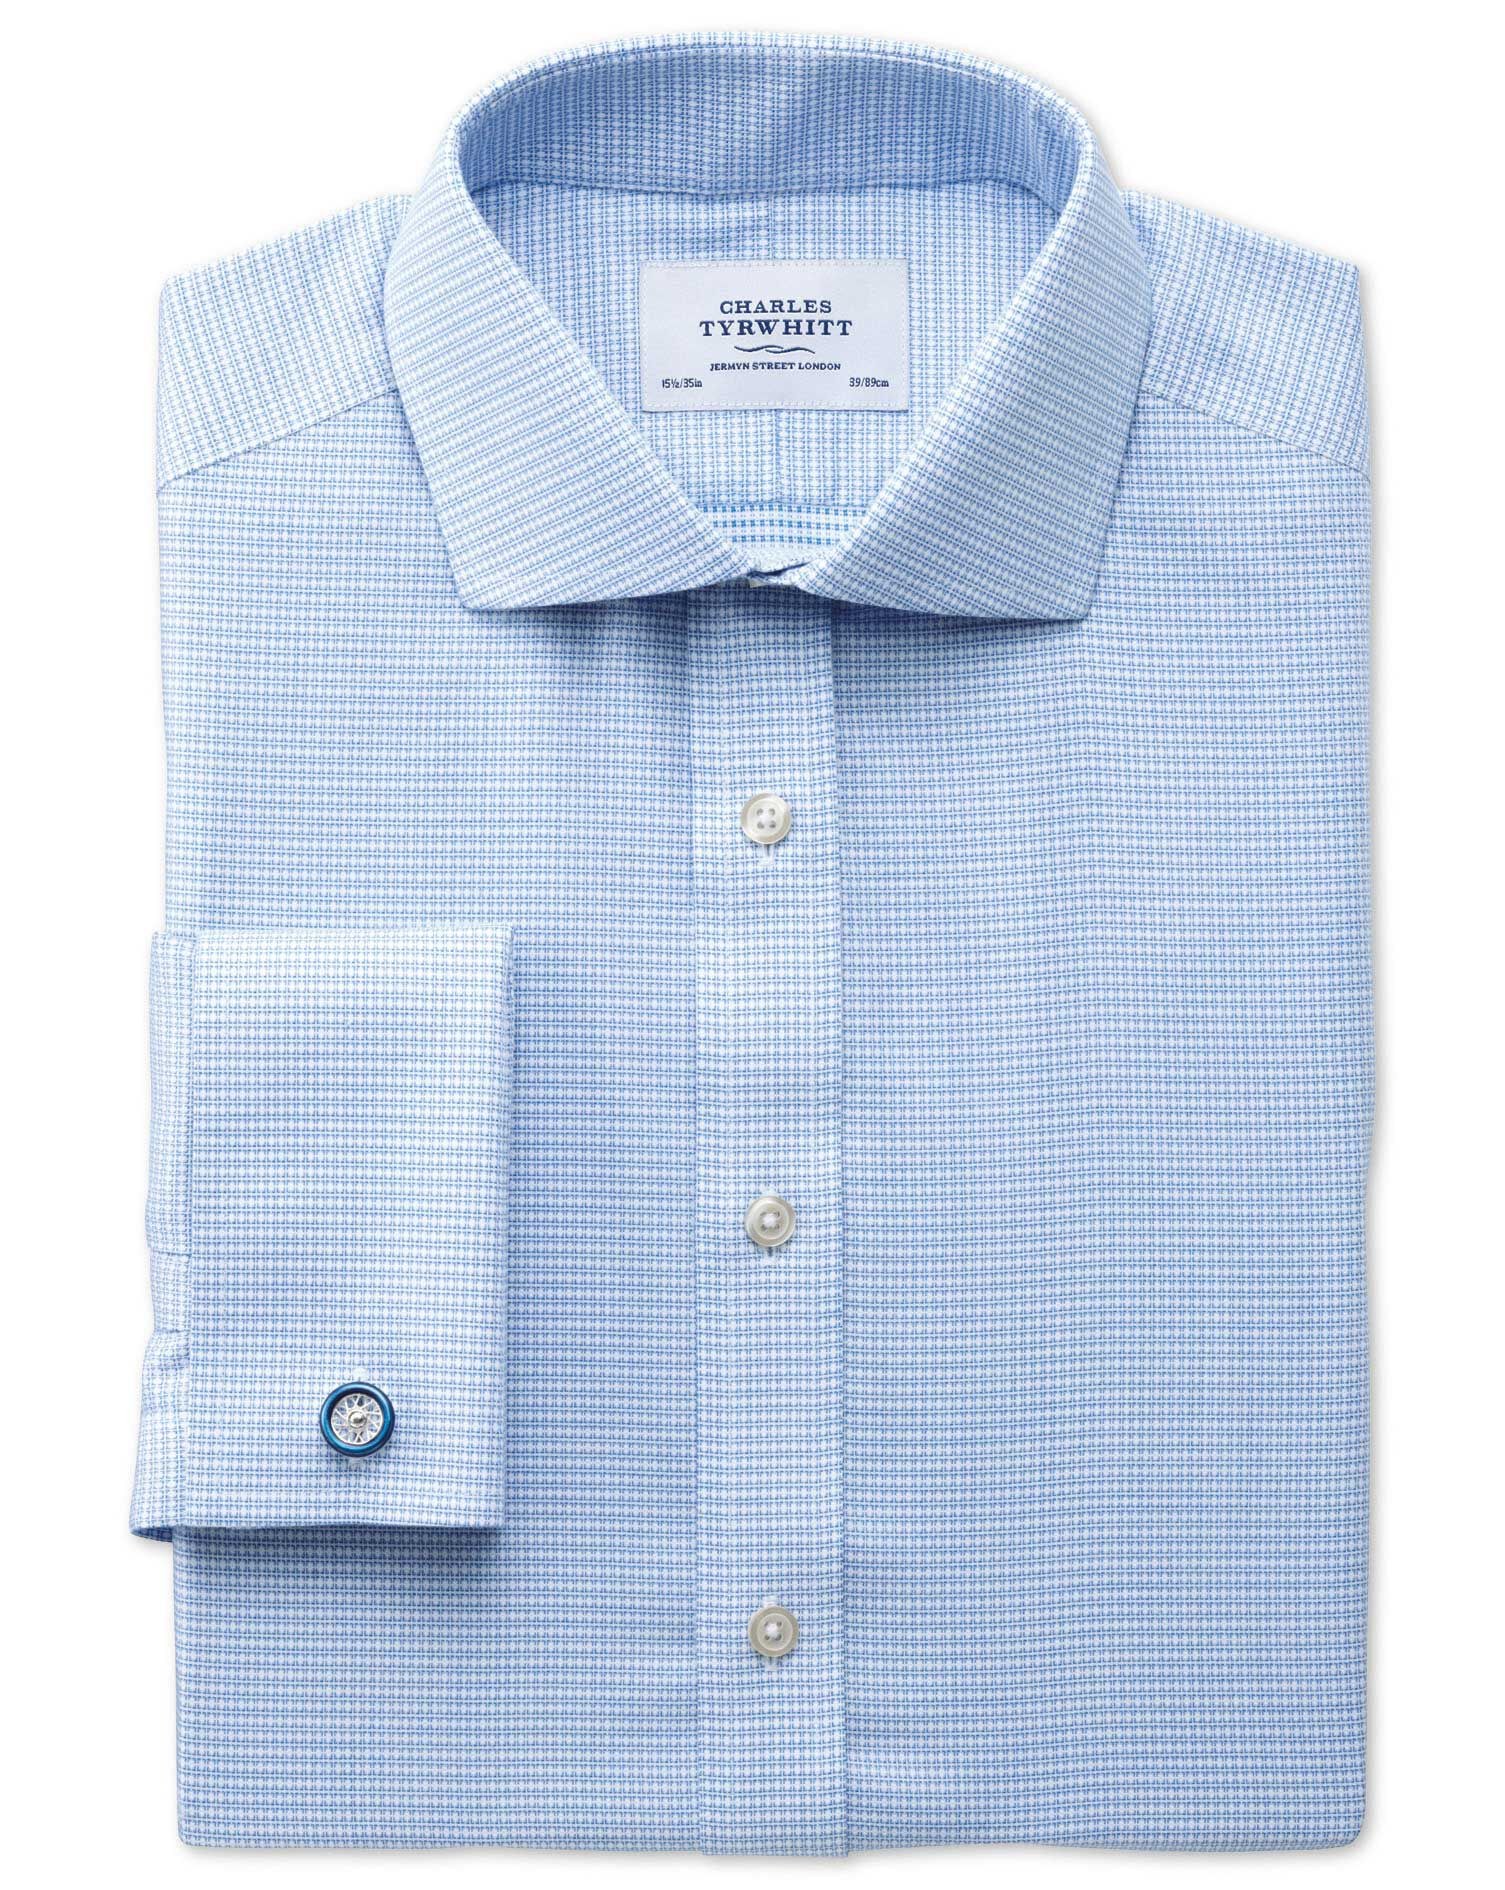 Slim Fit Cutaway Collar Non-Iron Square Textured Mid Blue Cotton Formal Shirt Single Cuff Size 16.5/